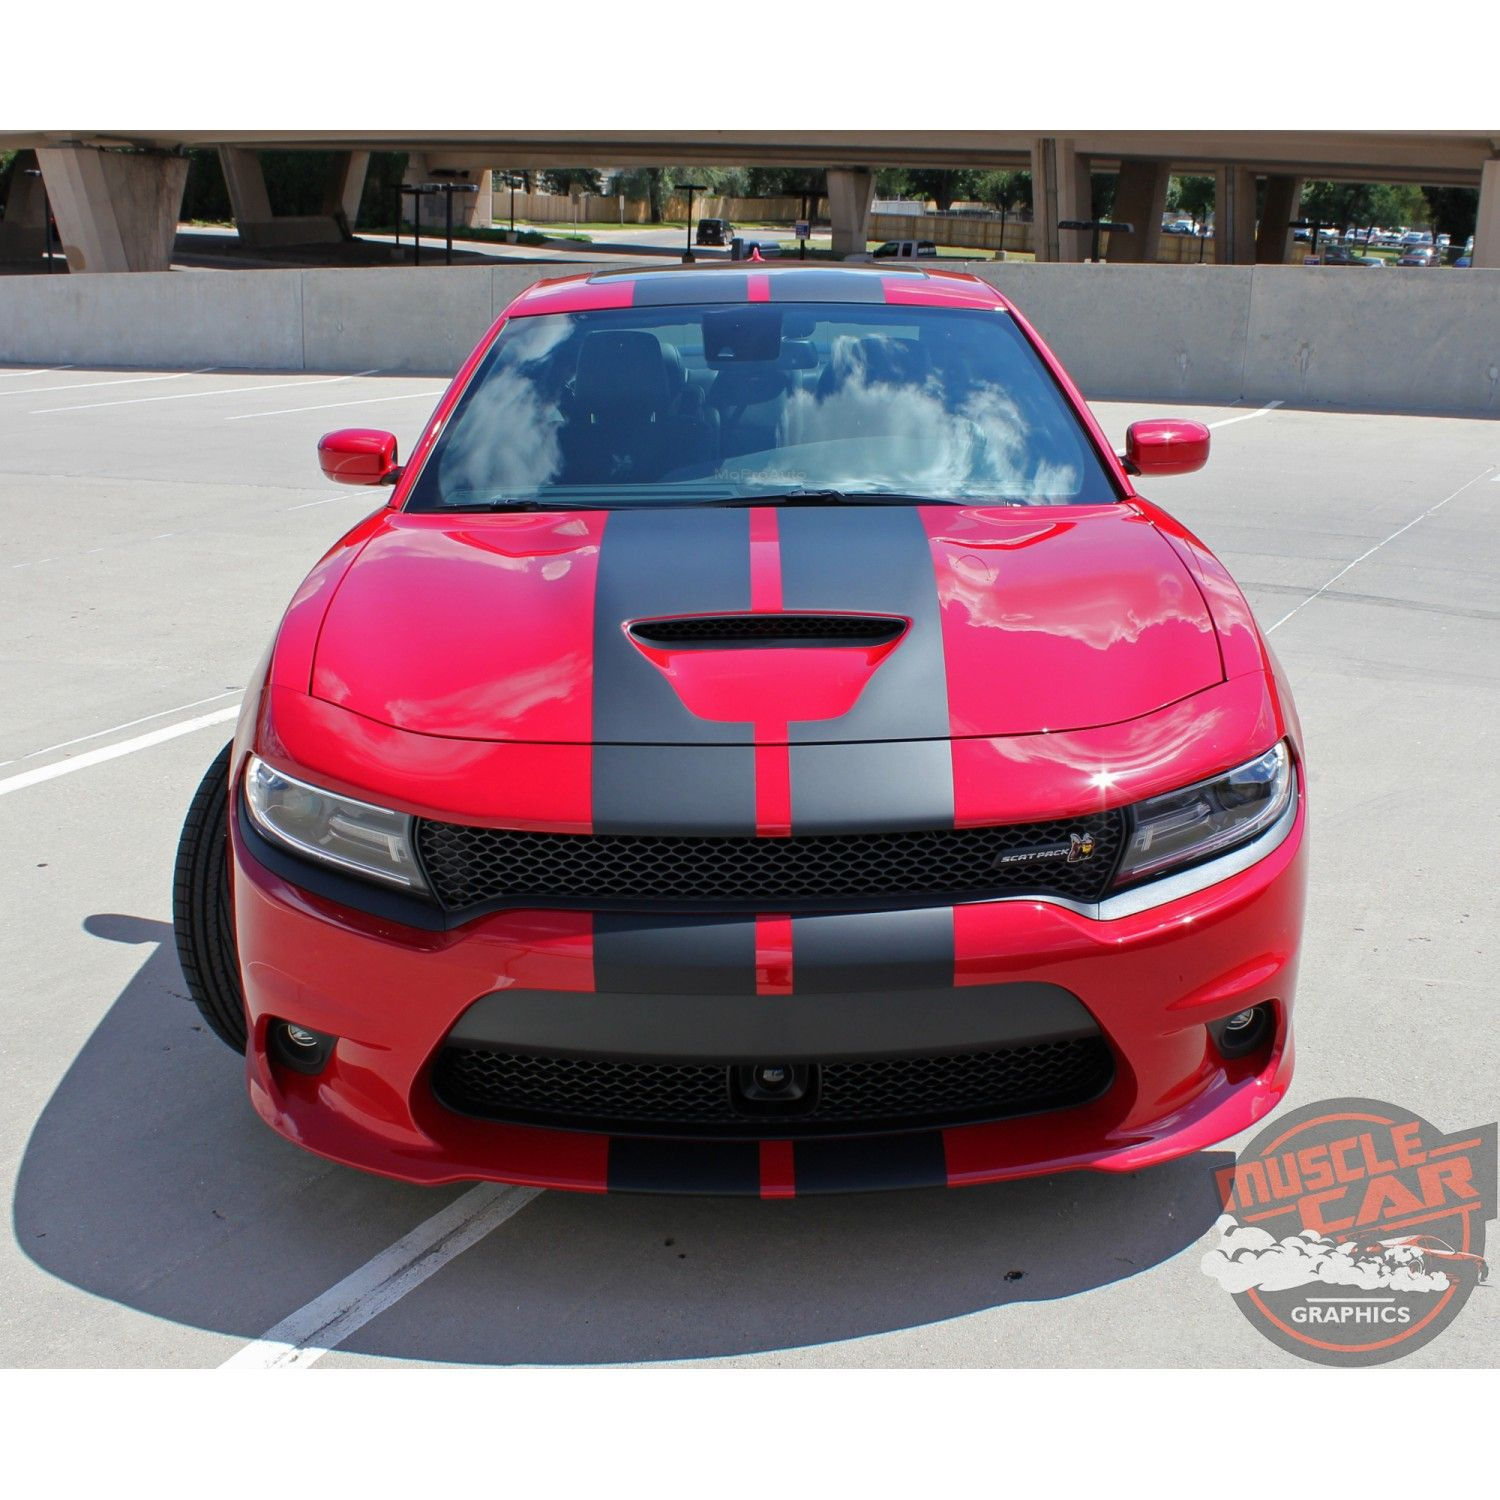 2 Red HELLCAT Emblems fits 2015 2016 2017 2018 2019 Dodge Challenger Charger